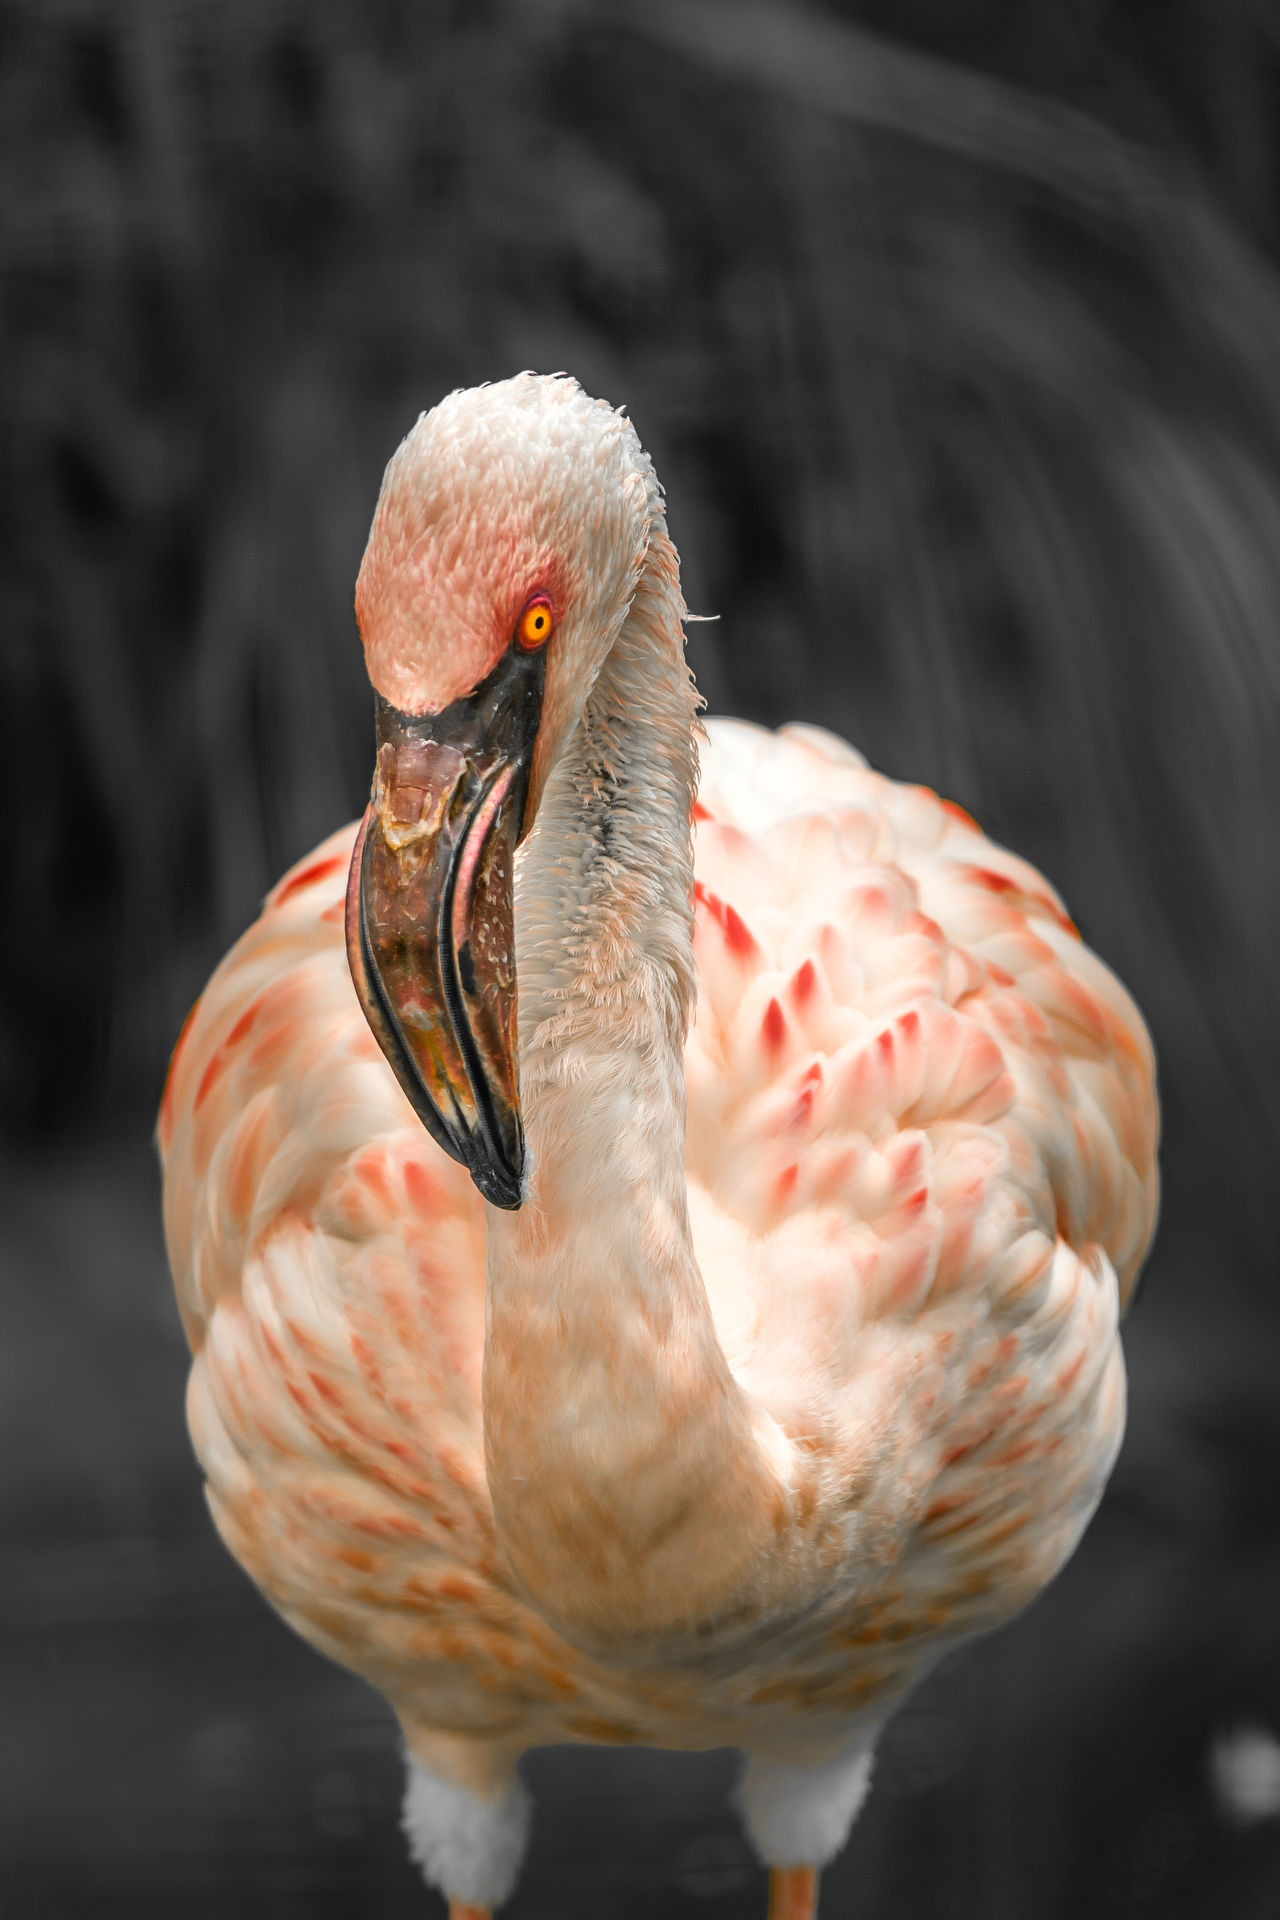 Animal Wildlife Flamingo Birds Of EyeEm  One Animal Animal Nature Animals In The Wild Bird No People Animal Themes Eyeem Market Animal Photography Portrait Wild Animal Body Part Tierfotografie Tier Animal Head  Close-up Flamingo Beauty Birds Of EyeEm  EyeEm Best Shots EyeEmBestPics EyeEm Nature Lover Vogel